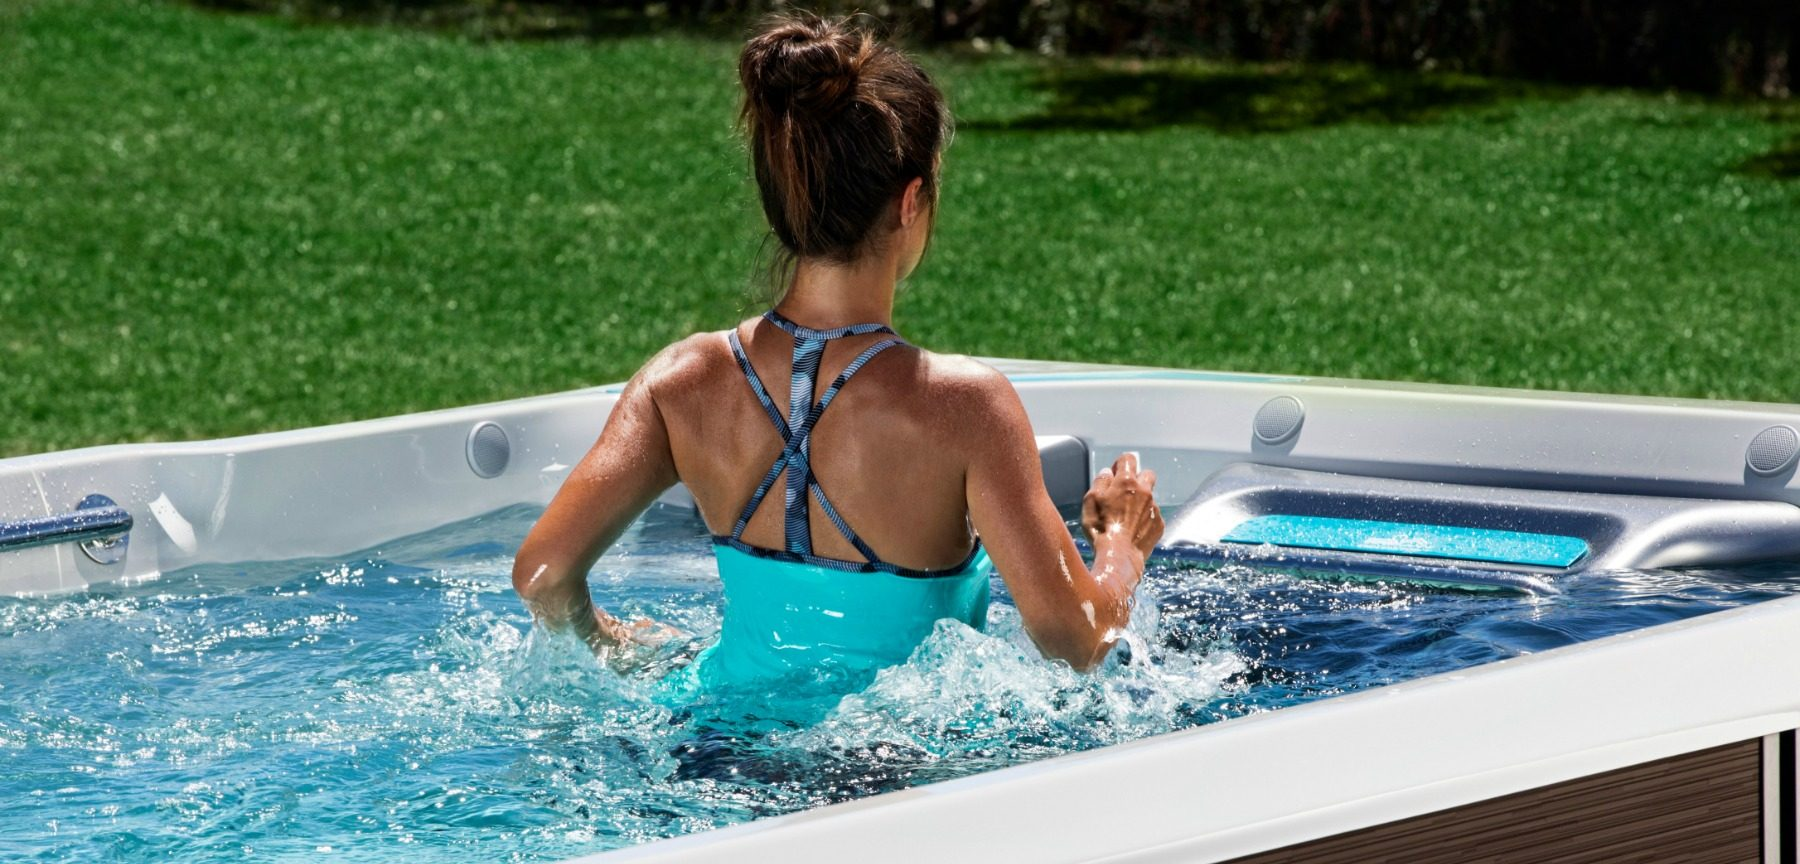 Meet Your 2021 Fitness Goals with an Endless Pools®